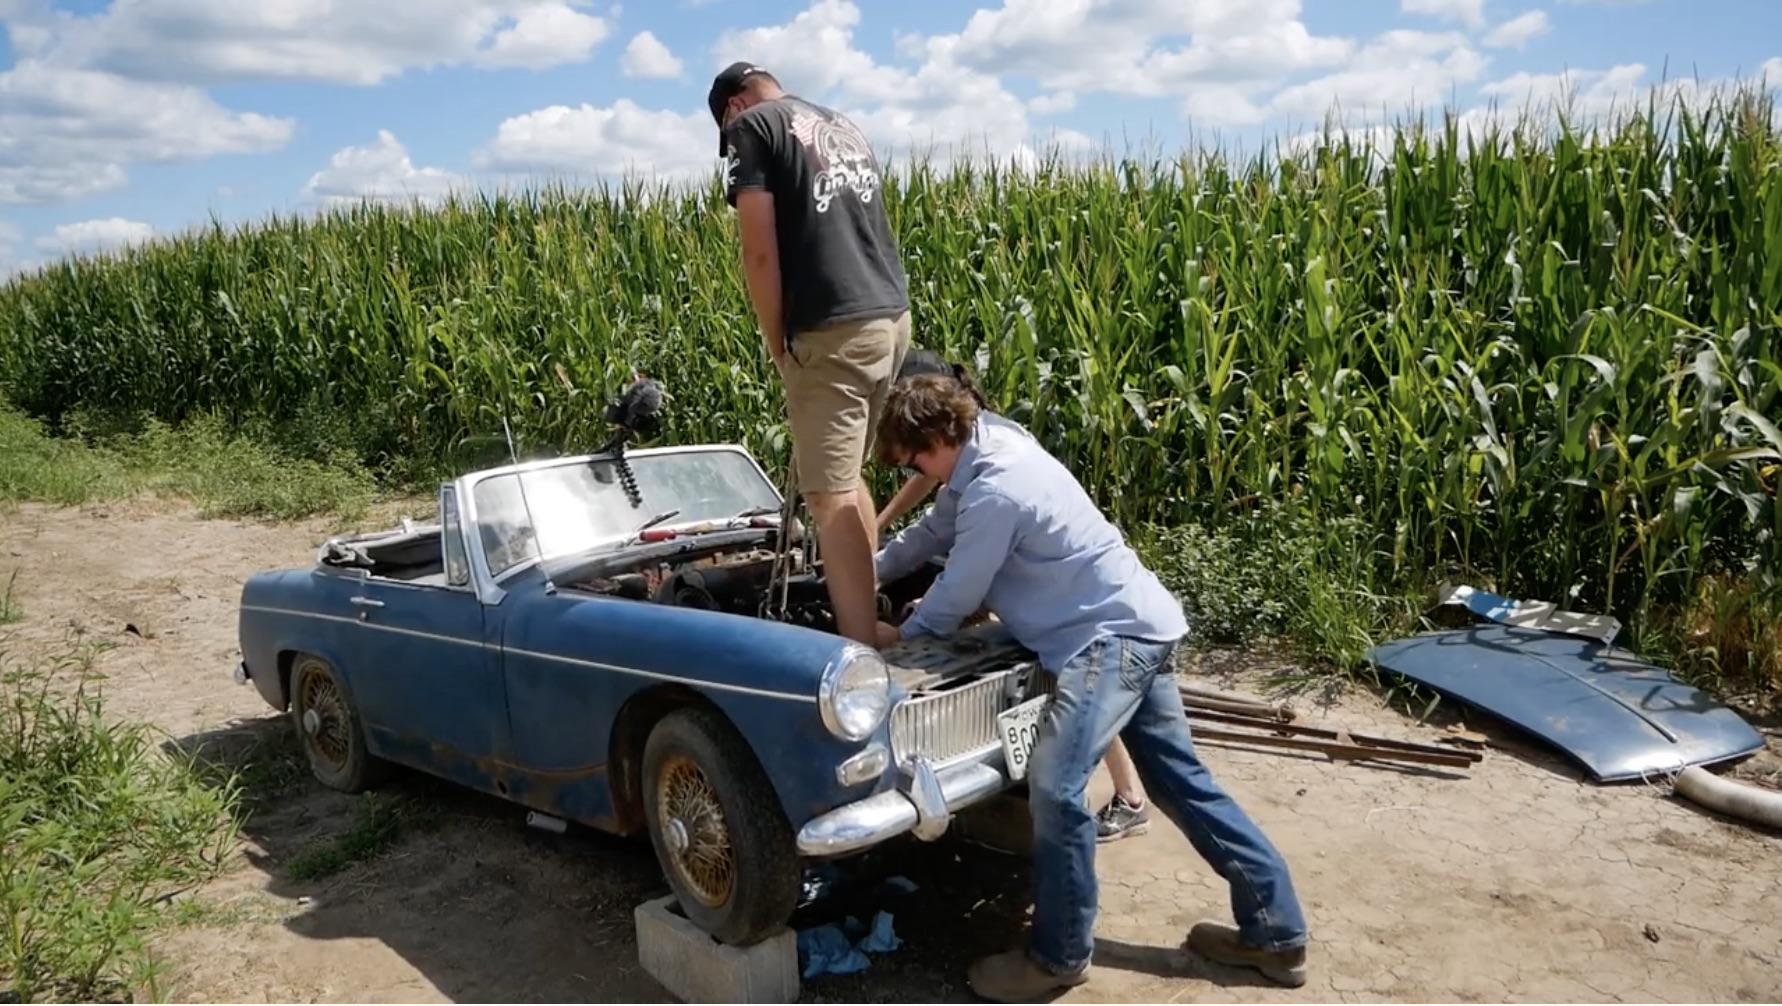 Midget Of The Corn, Part 2: Putting The Engine In By Hand!